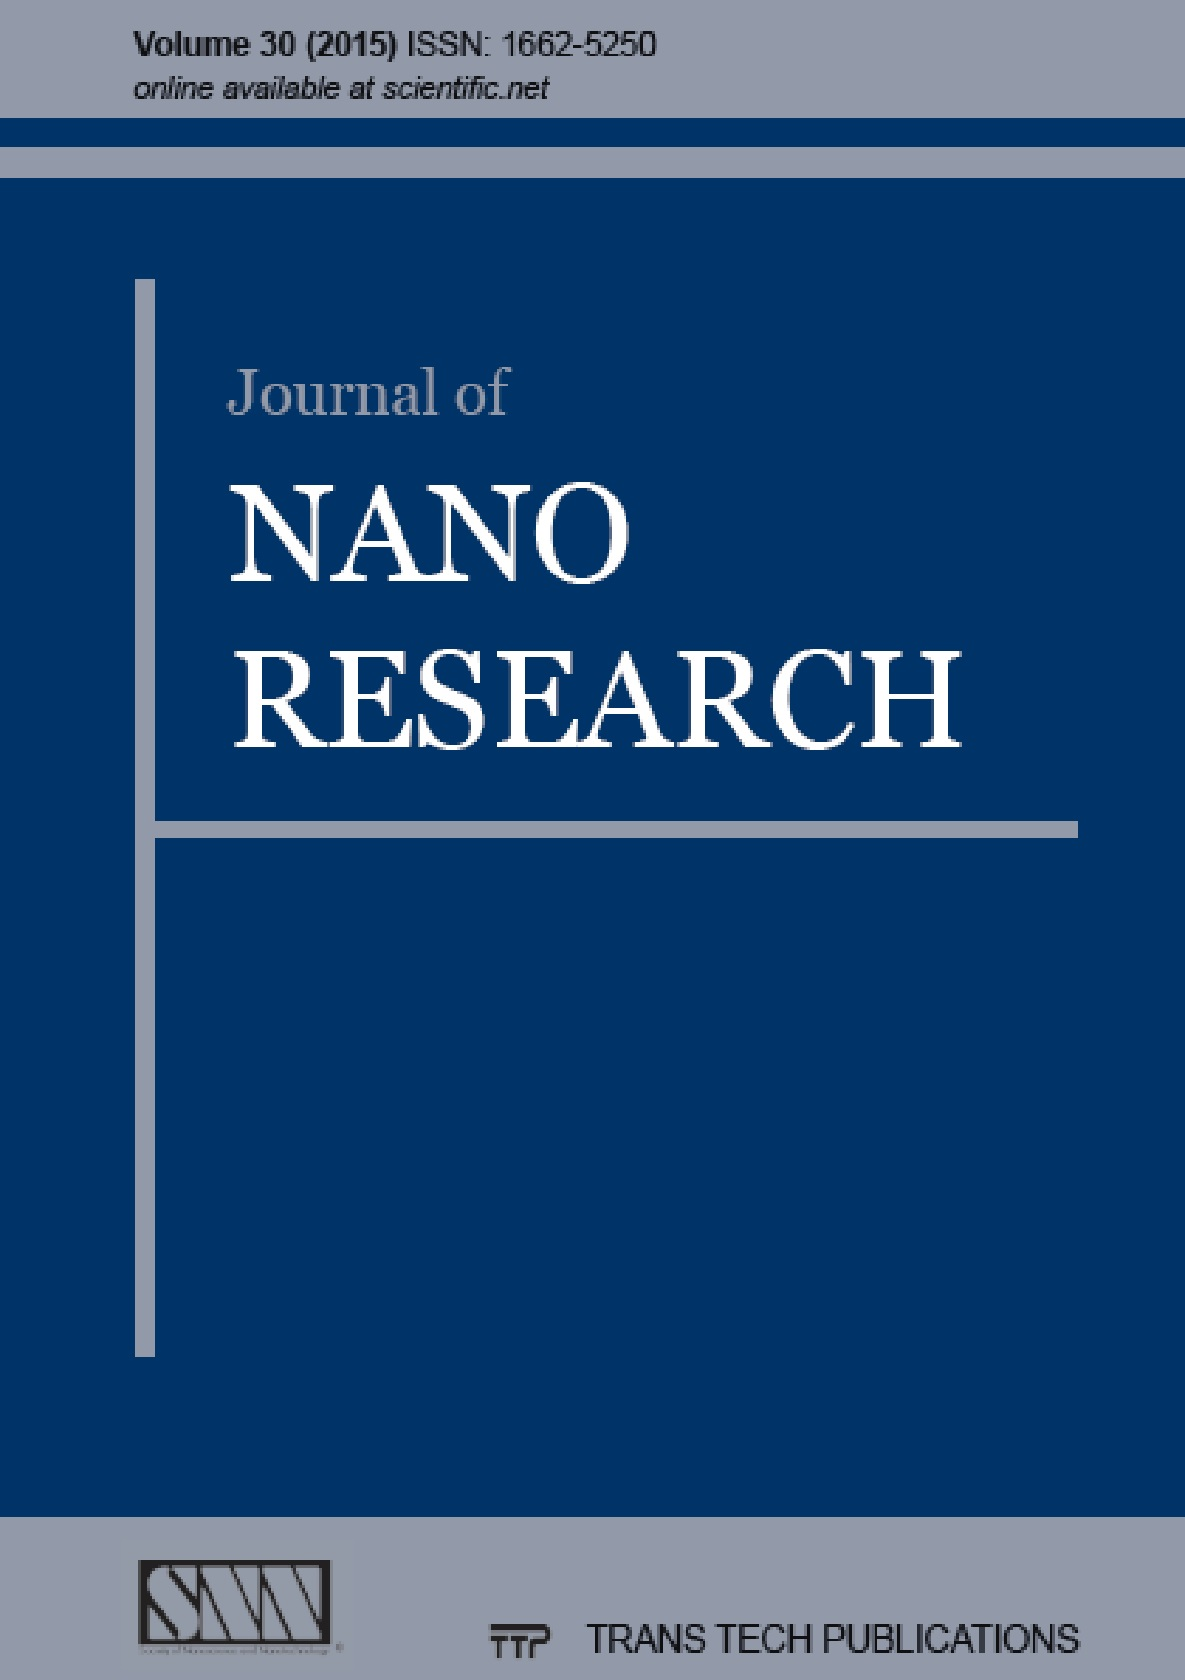 Journal of Nano Research Vol. 30